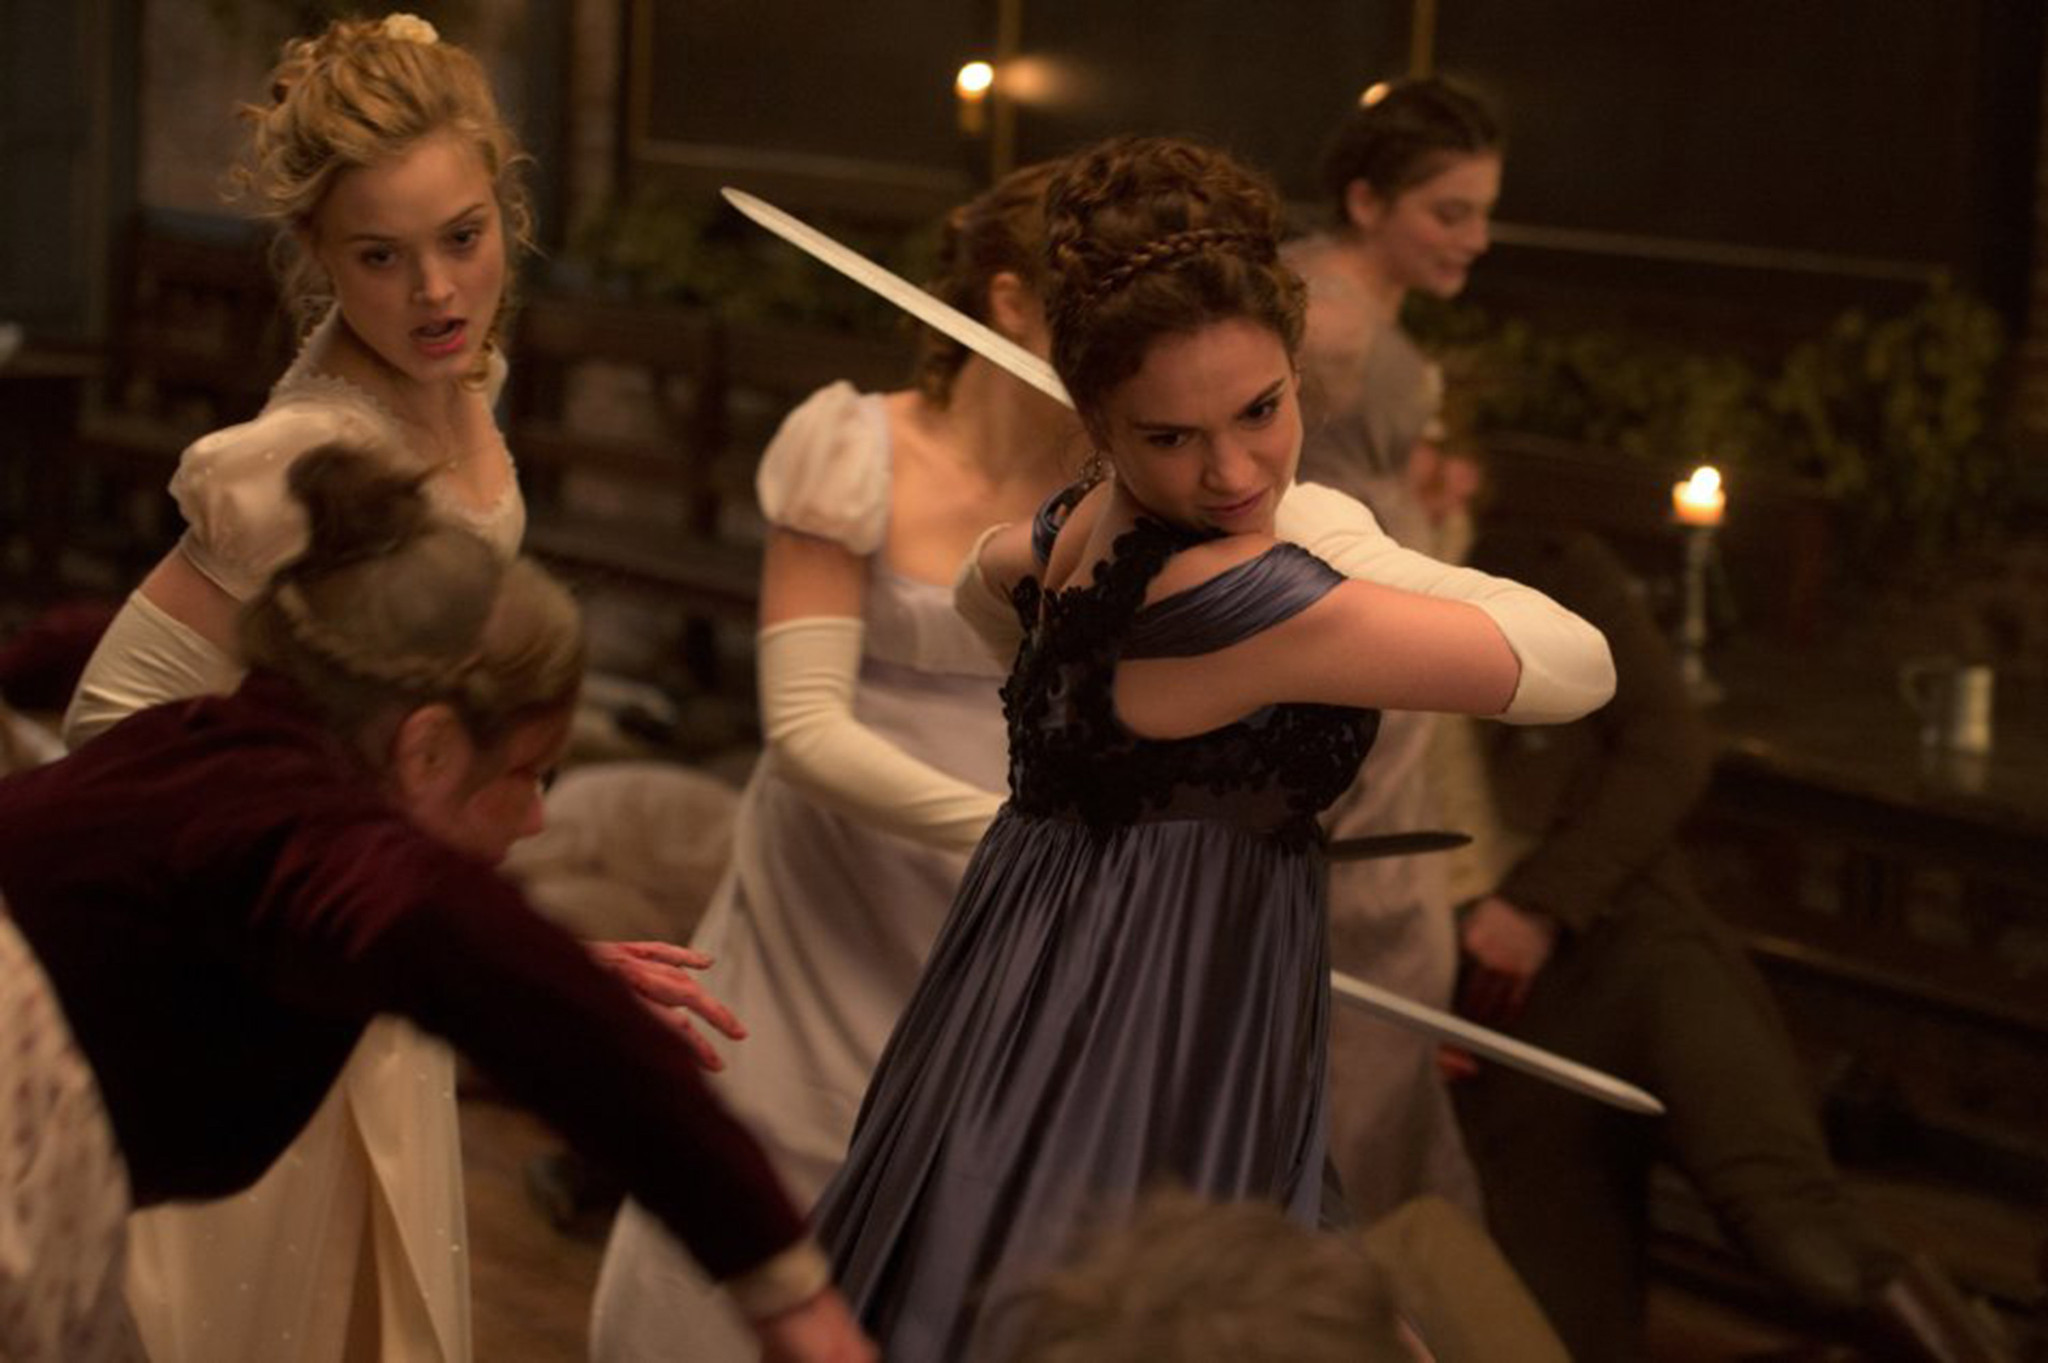 pride and prejudice and zombies review tea and crumpets meet the pride and prejudice and zombies review tea and crumpets meet the zombie apocalypse in jane austen mashup chicago tribune